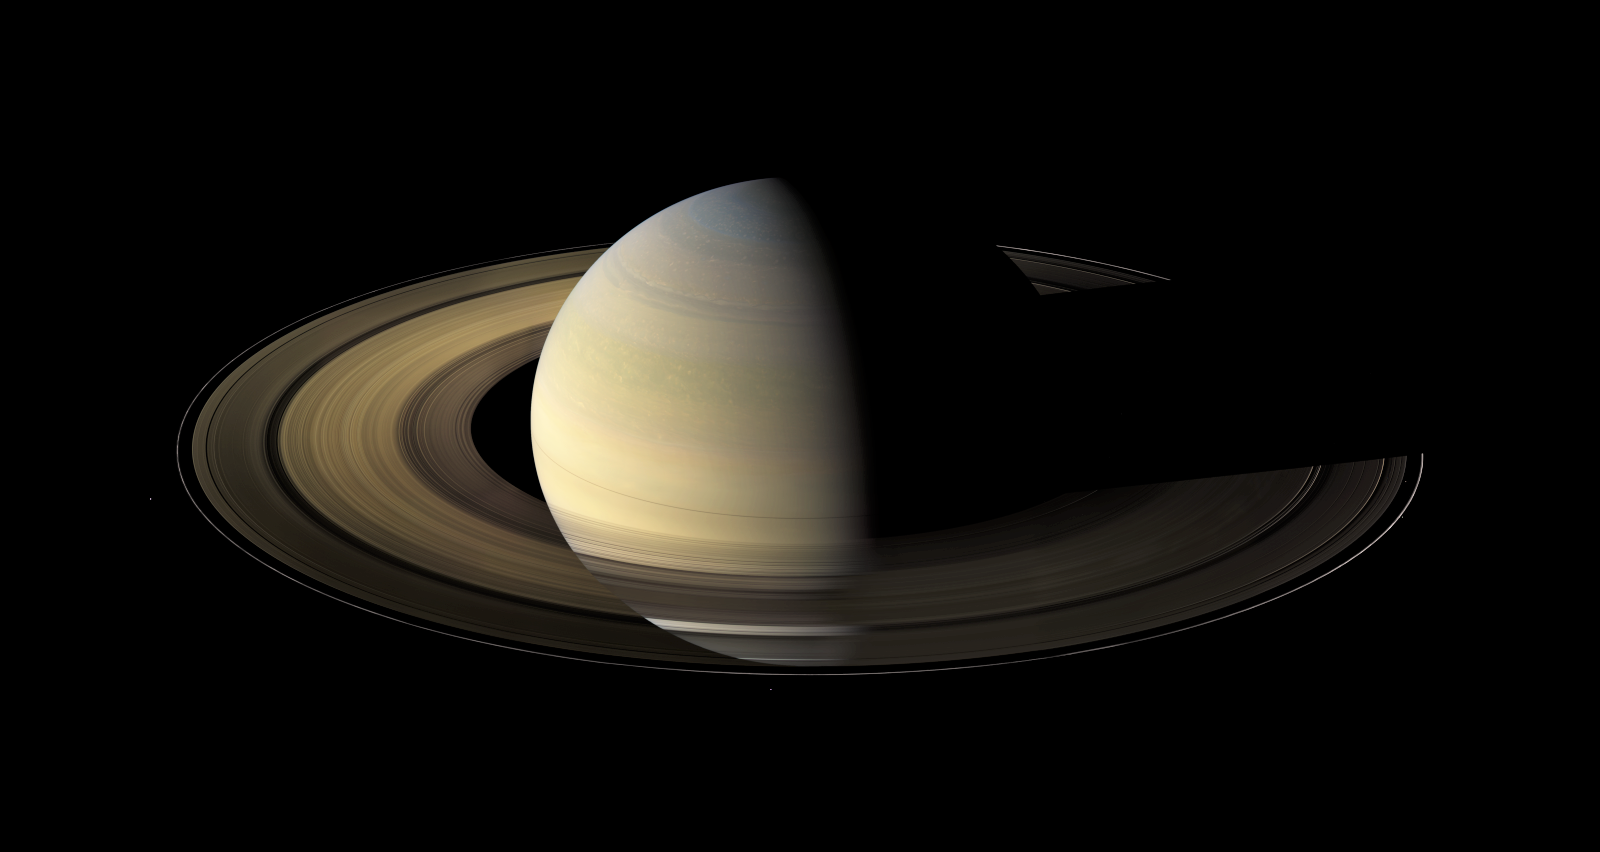 Saturn: The Rite of Spring